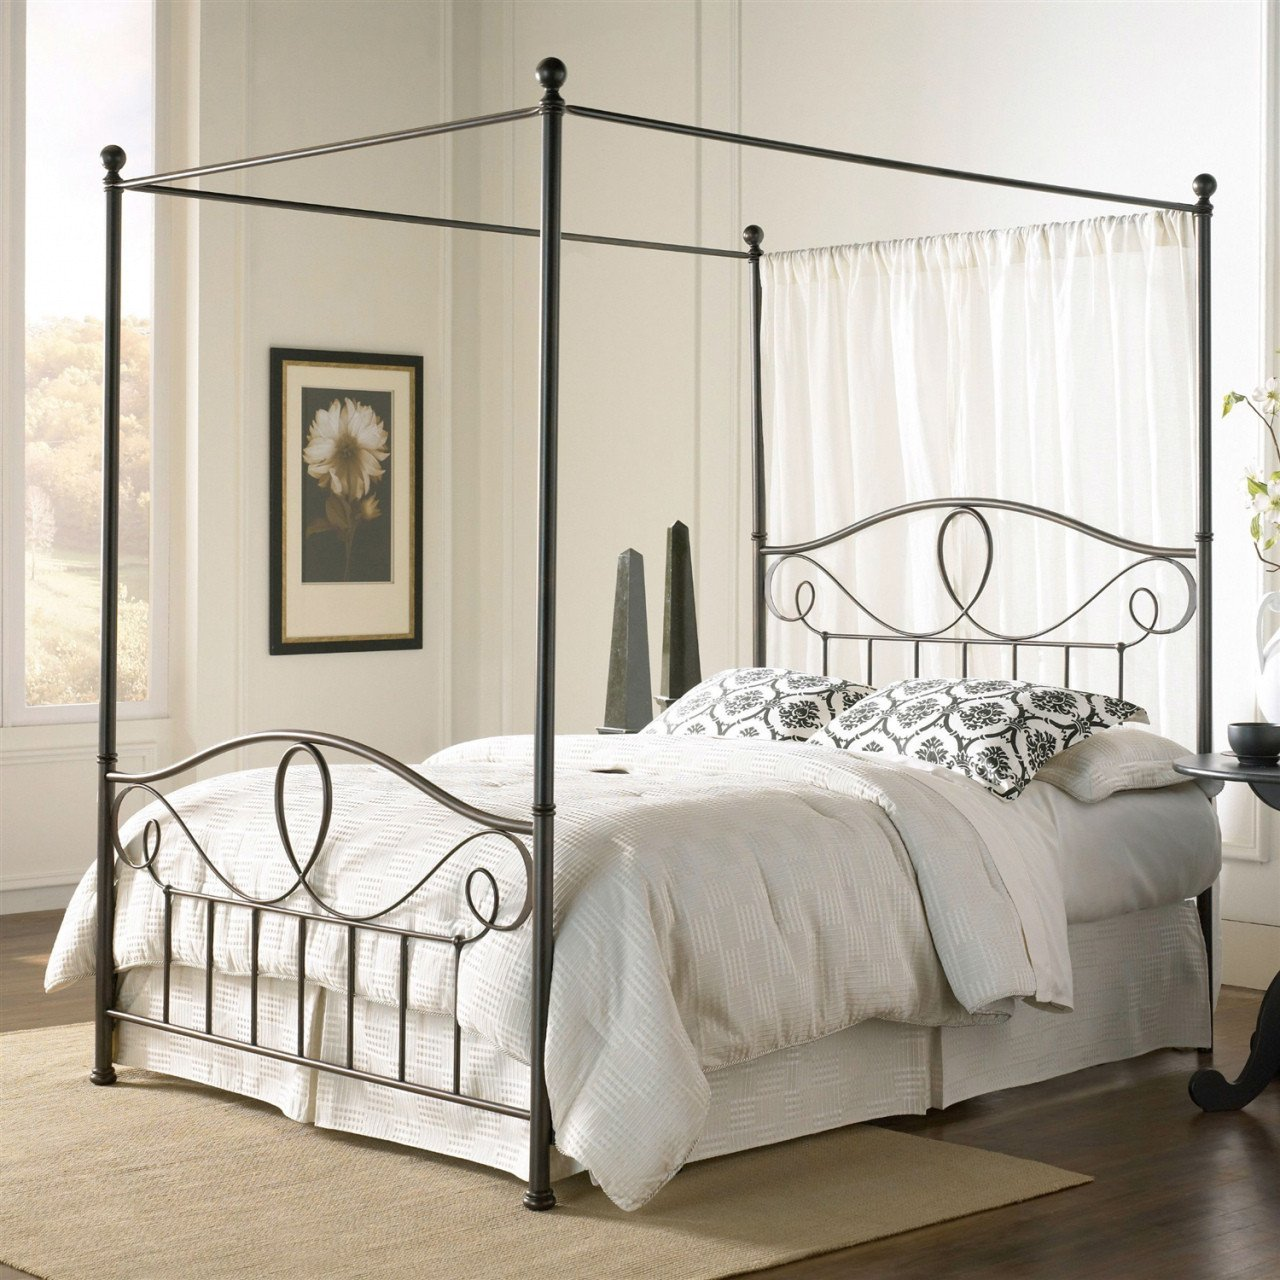 Girl Canopy Bedroom Set Beautiful Iron Canopy Bed Frame — Procura Home Blog